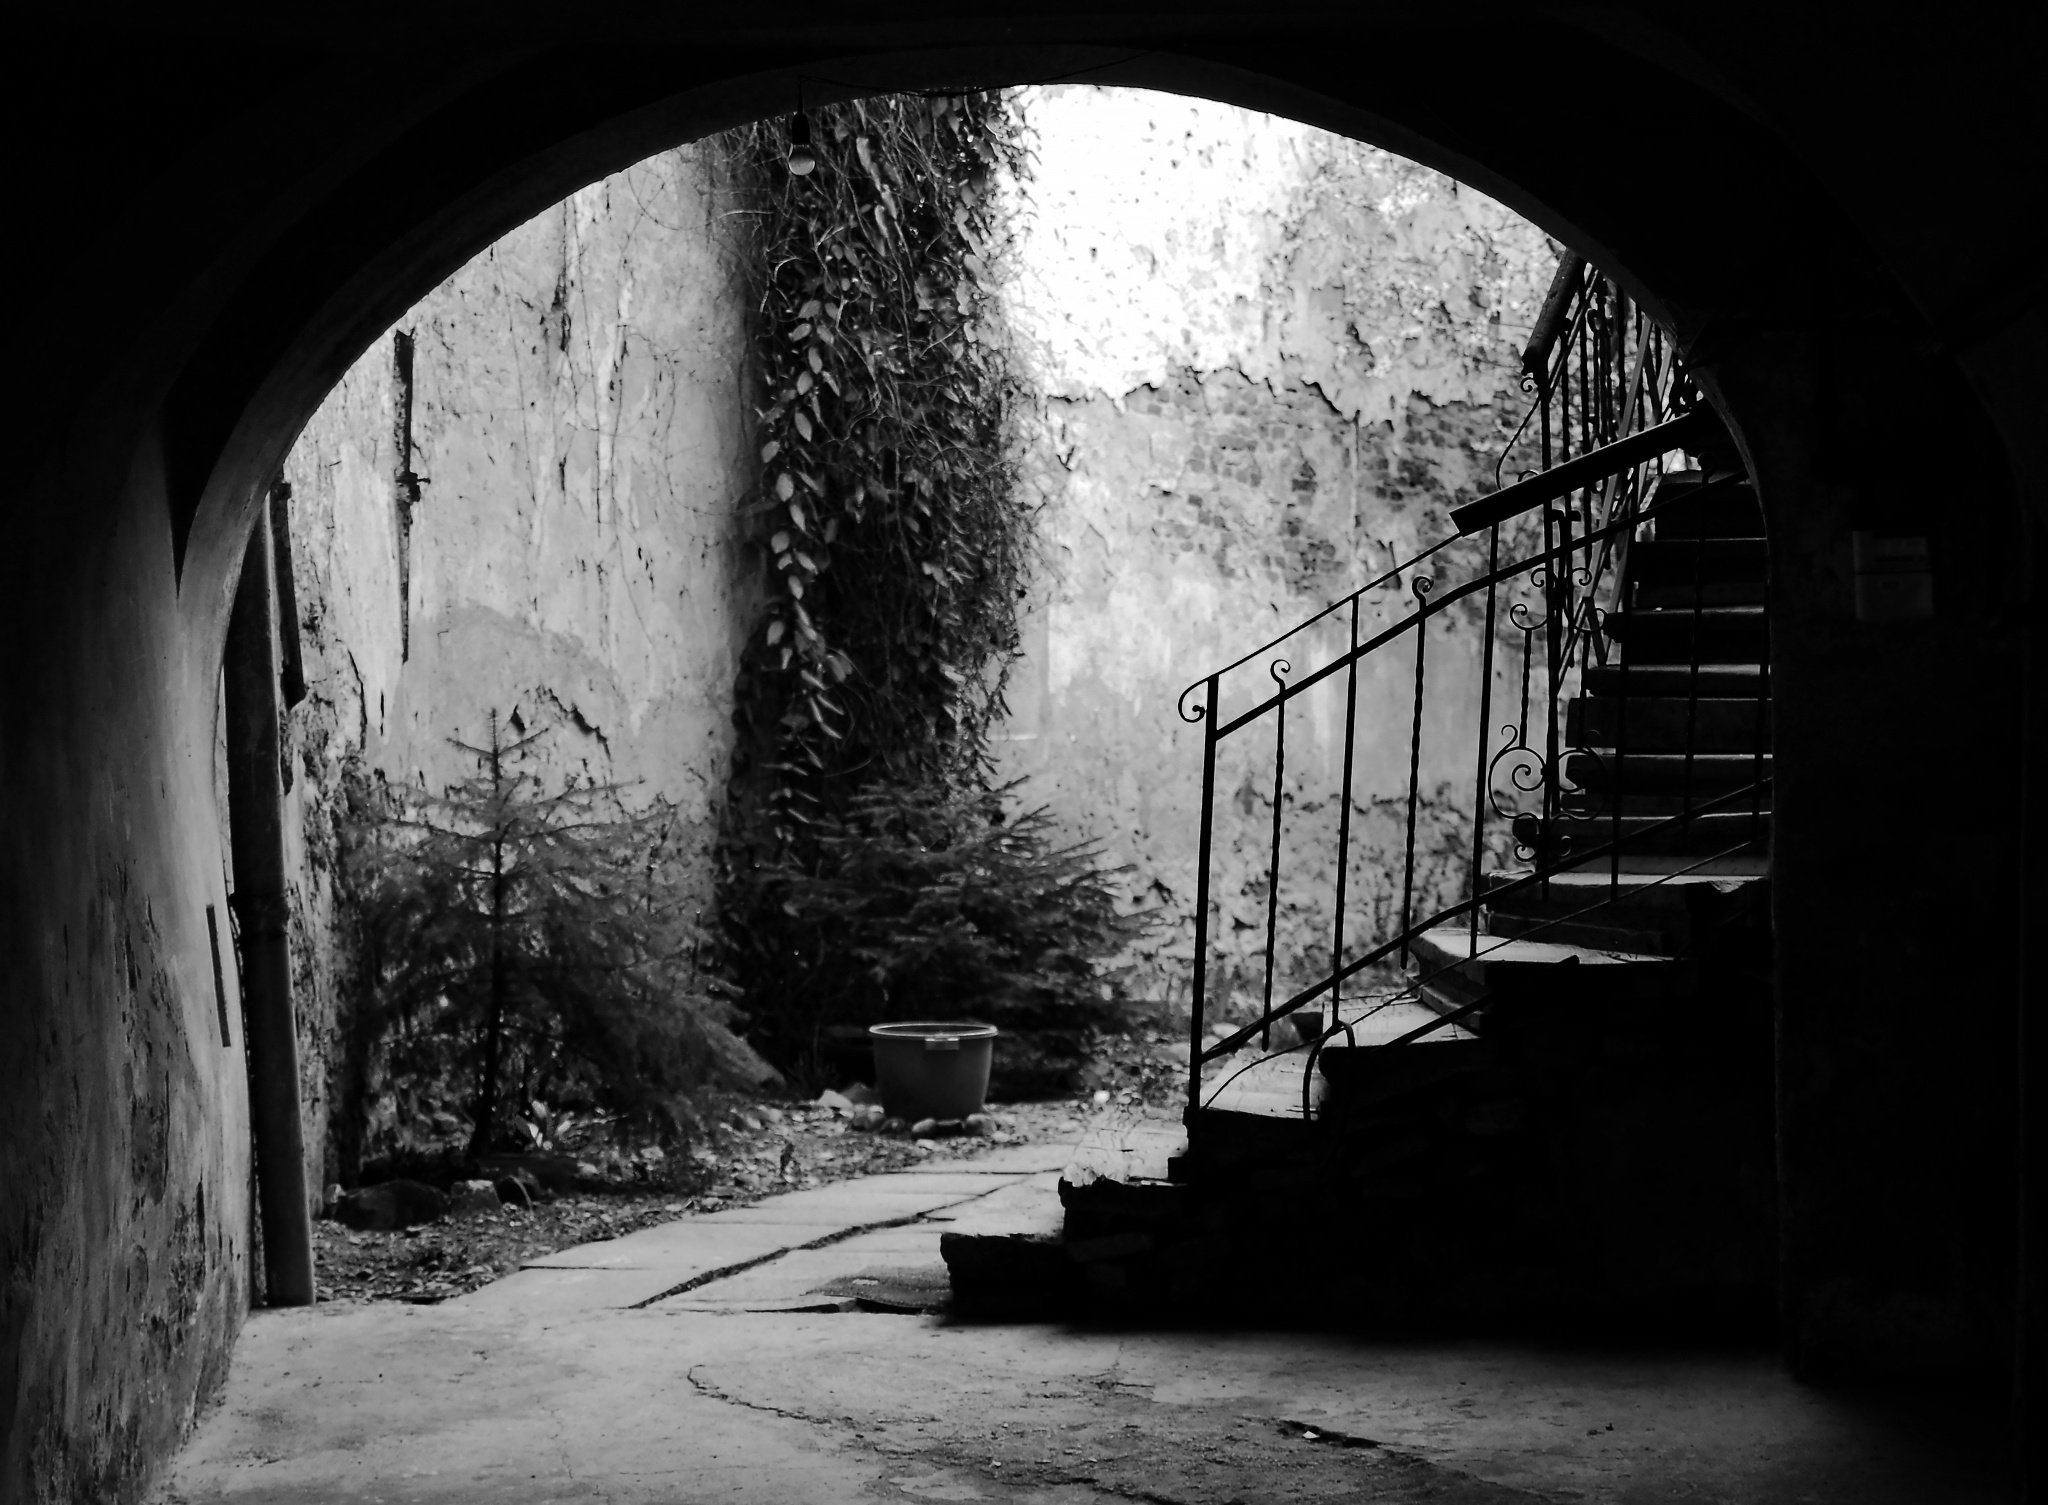 Up the Stairs by PM Kelly